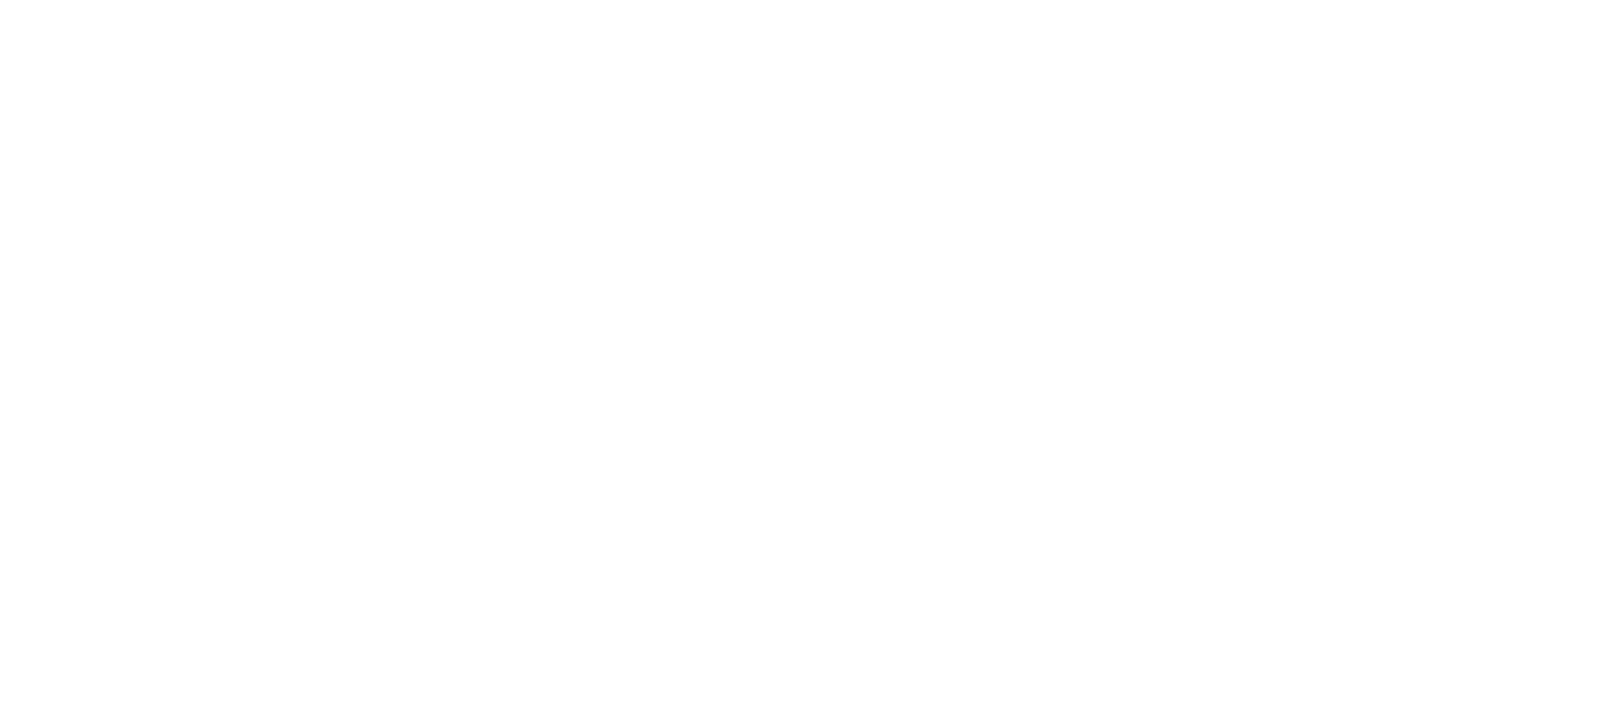 Cotswold Eats Logo in White